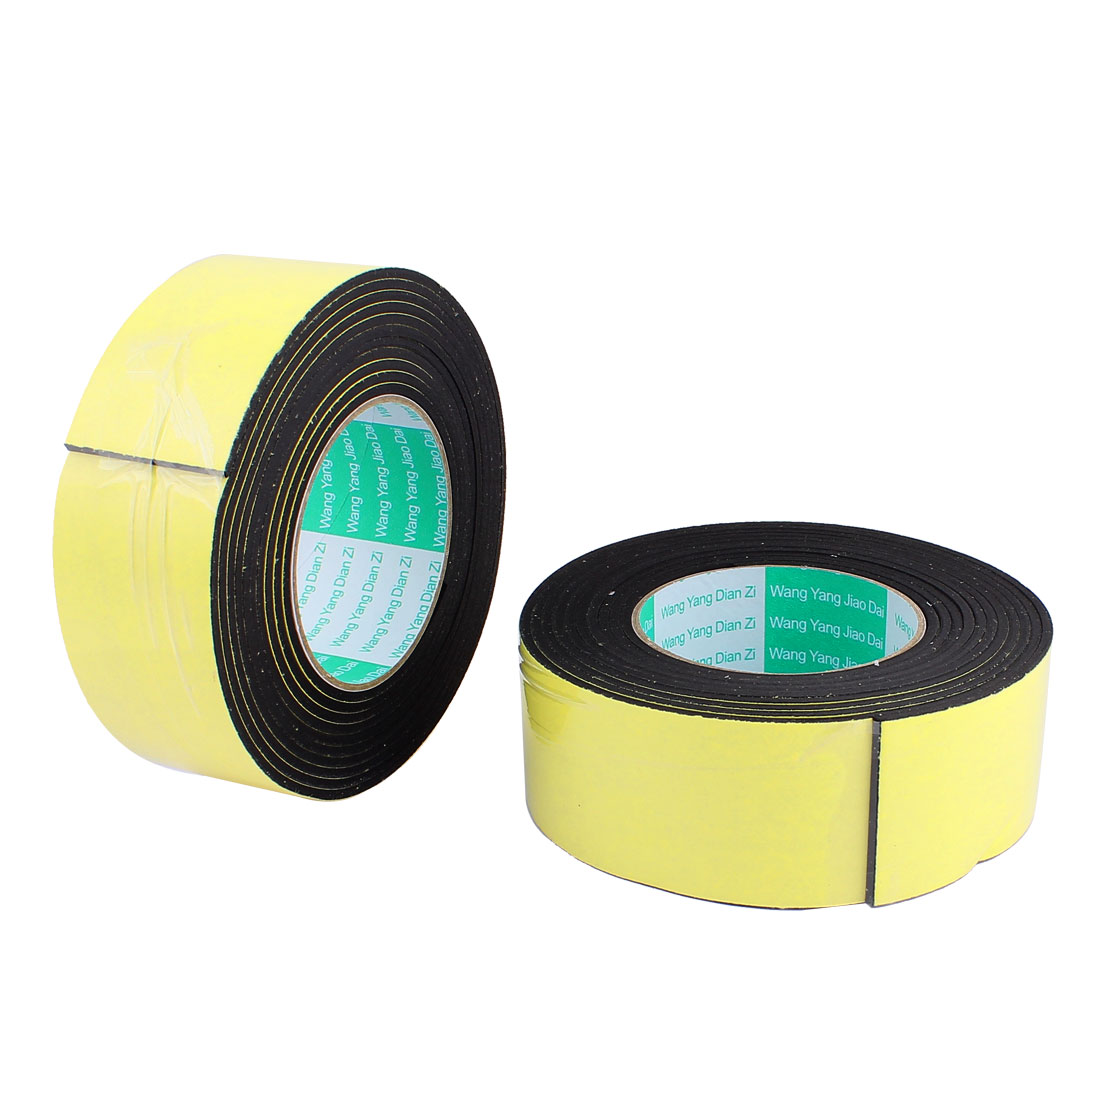 2 Pcs 5CM Width 4M Length 3MM Thick Single Sided Sealing Shockproof Sponge Tape